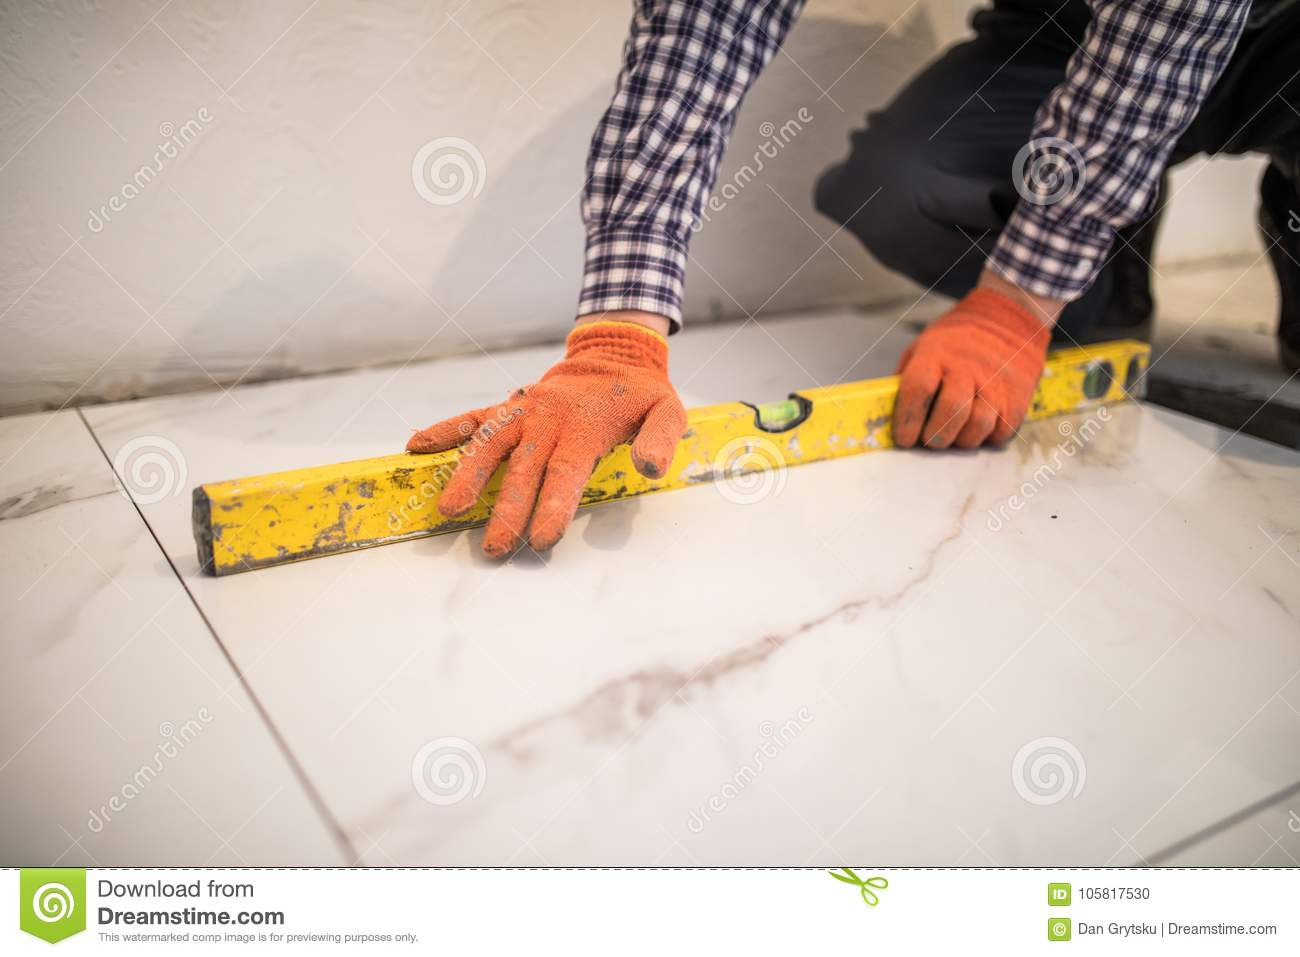 Home Tile Improvement Handyman With Level Laying Down Tile Floor